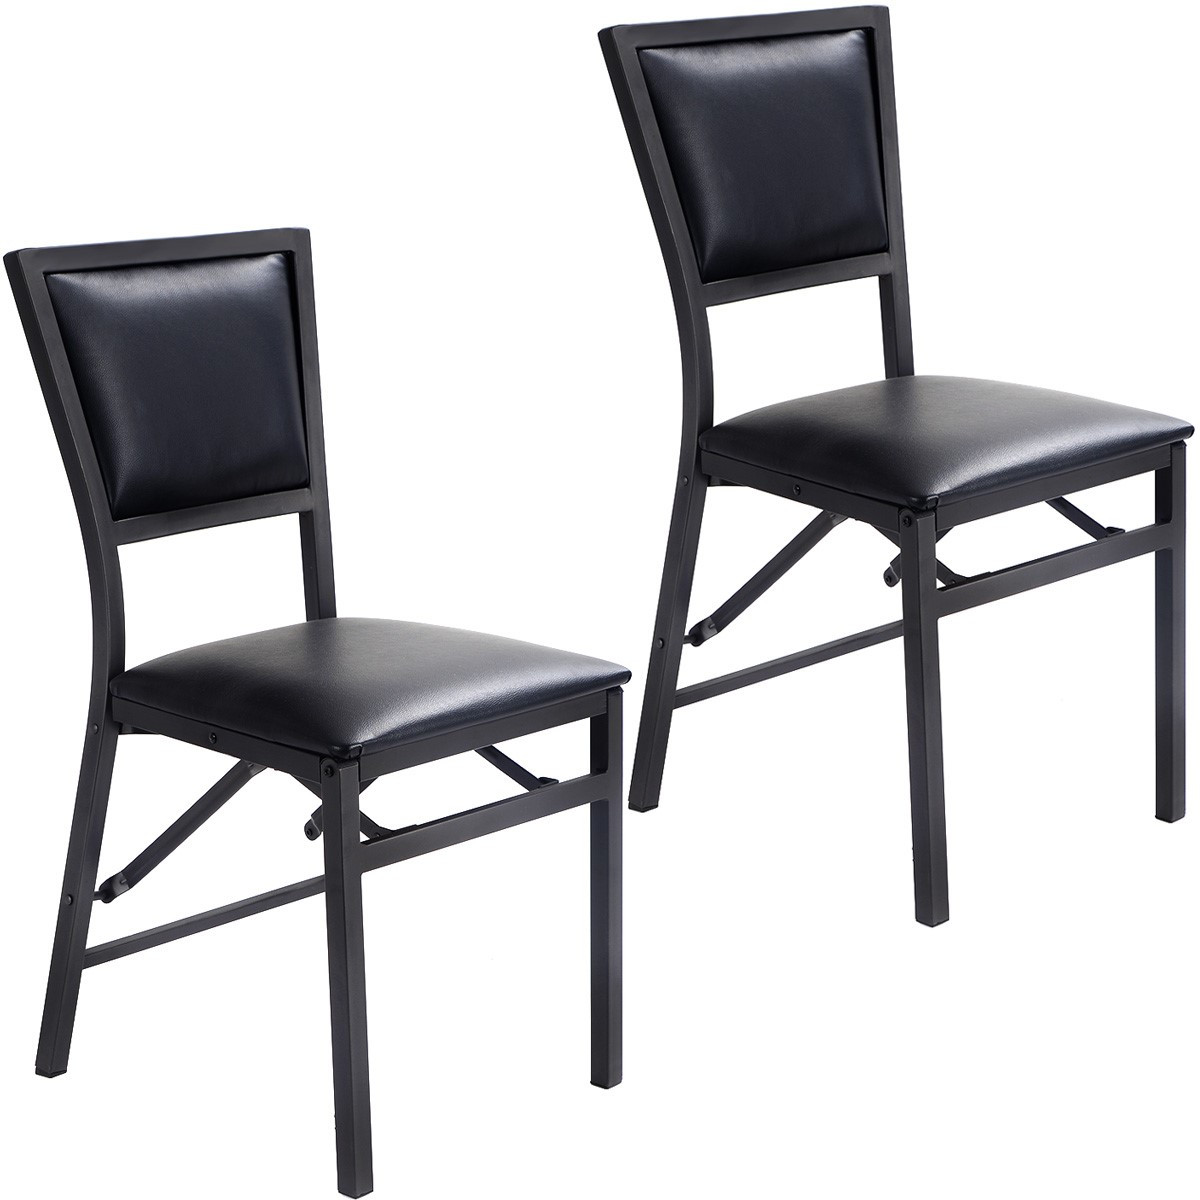 Best ideas about Metal Folding Chair . Save or Pin Costway Set of 2 metal Folding Chair Dining Chairs Home Now.